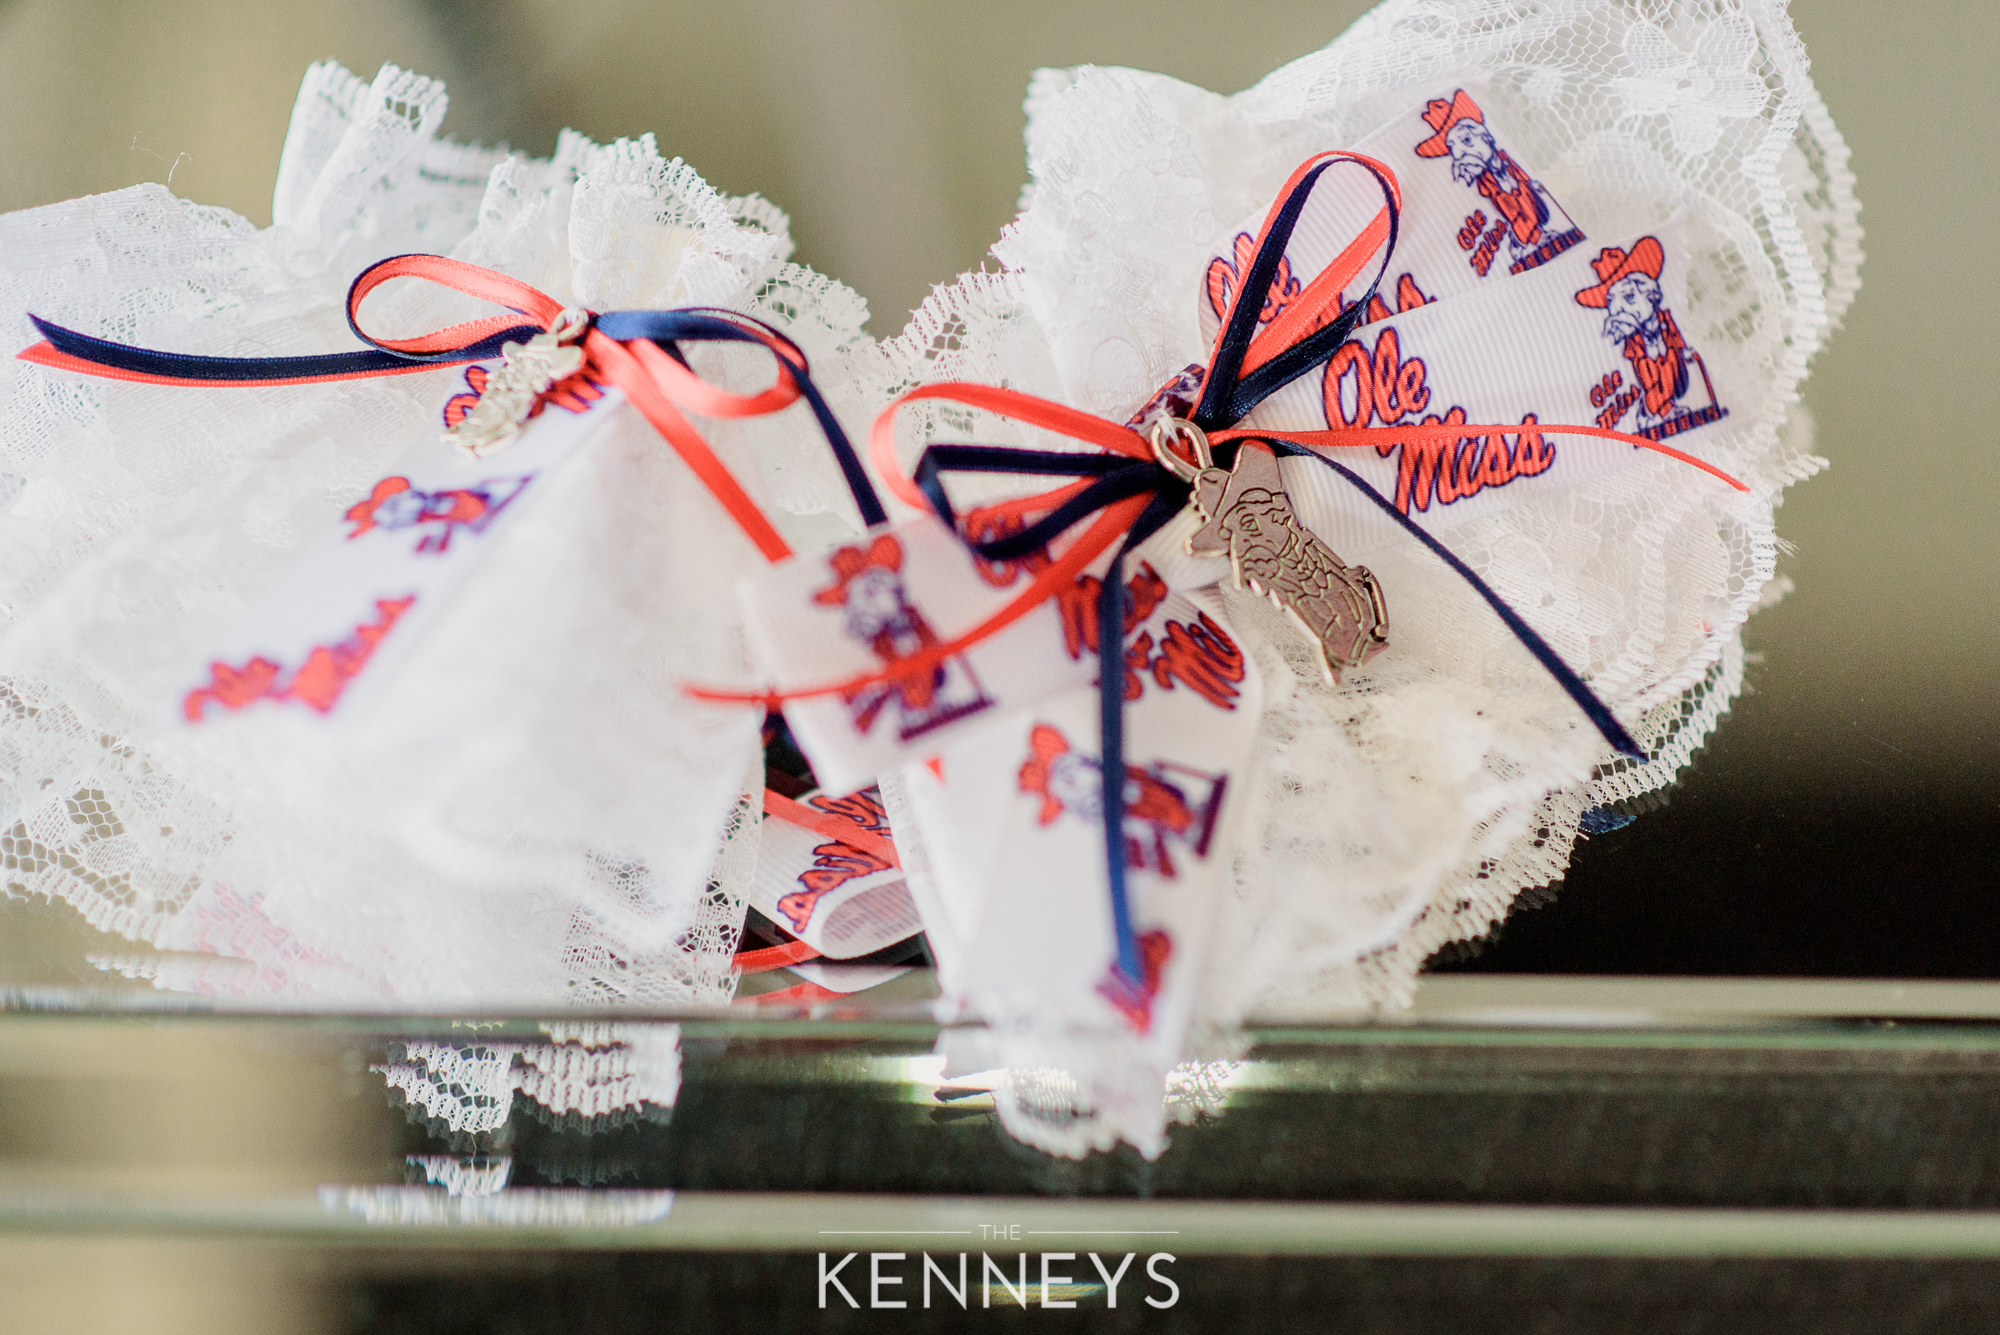 and don't forget the REBEL garter to surprise the Ole Miss groom too!